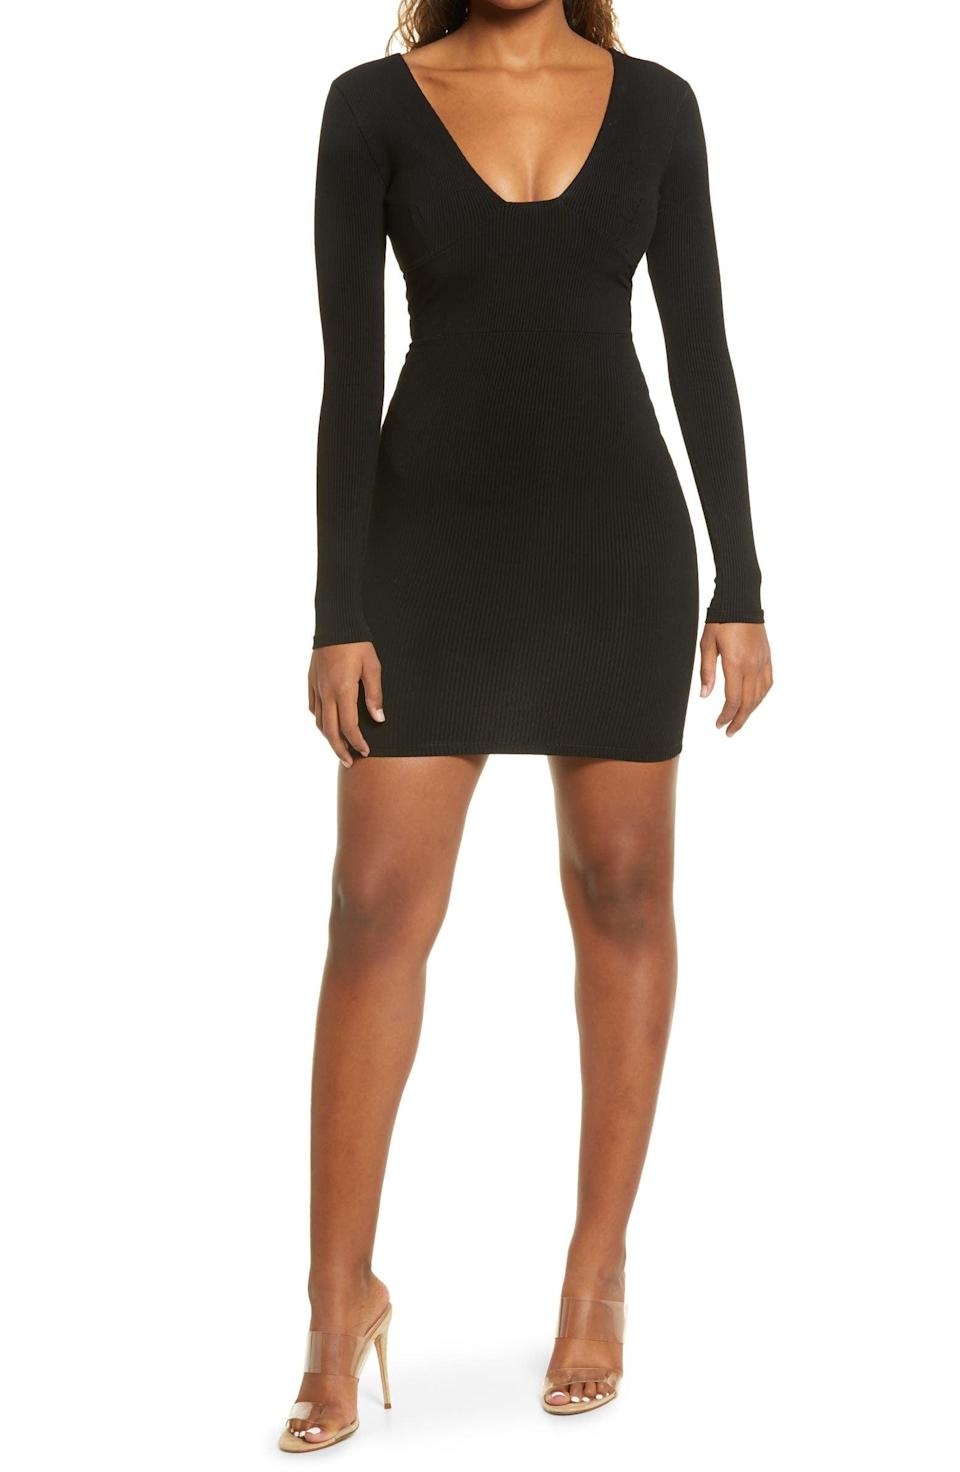 <p><span>Naked Wardrobe Snatched Bustier Long Sleeve Rib Body-Con Dress</span> ($29, originally $58)</p>